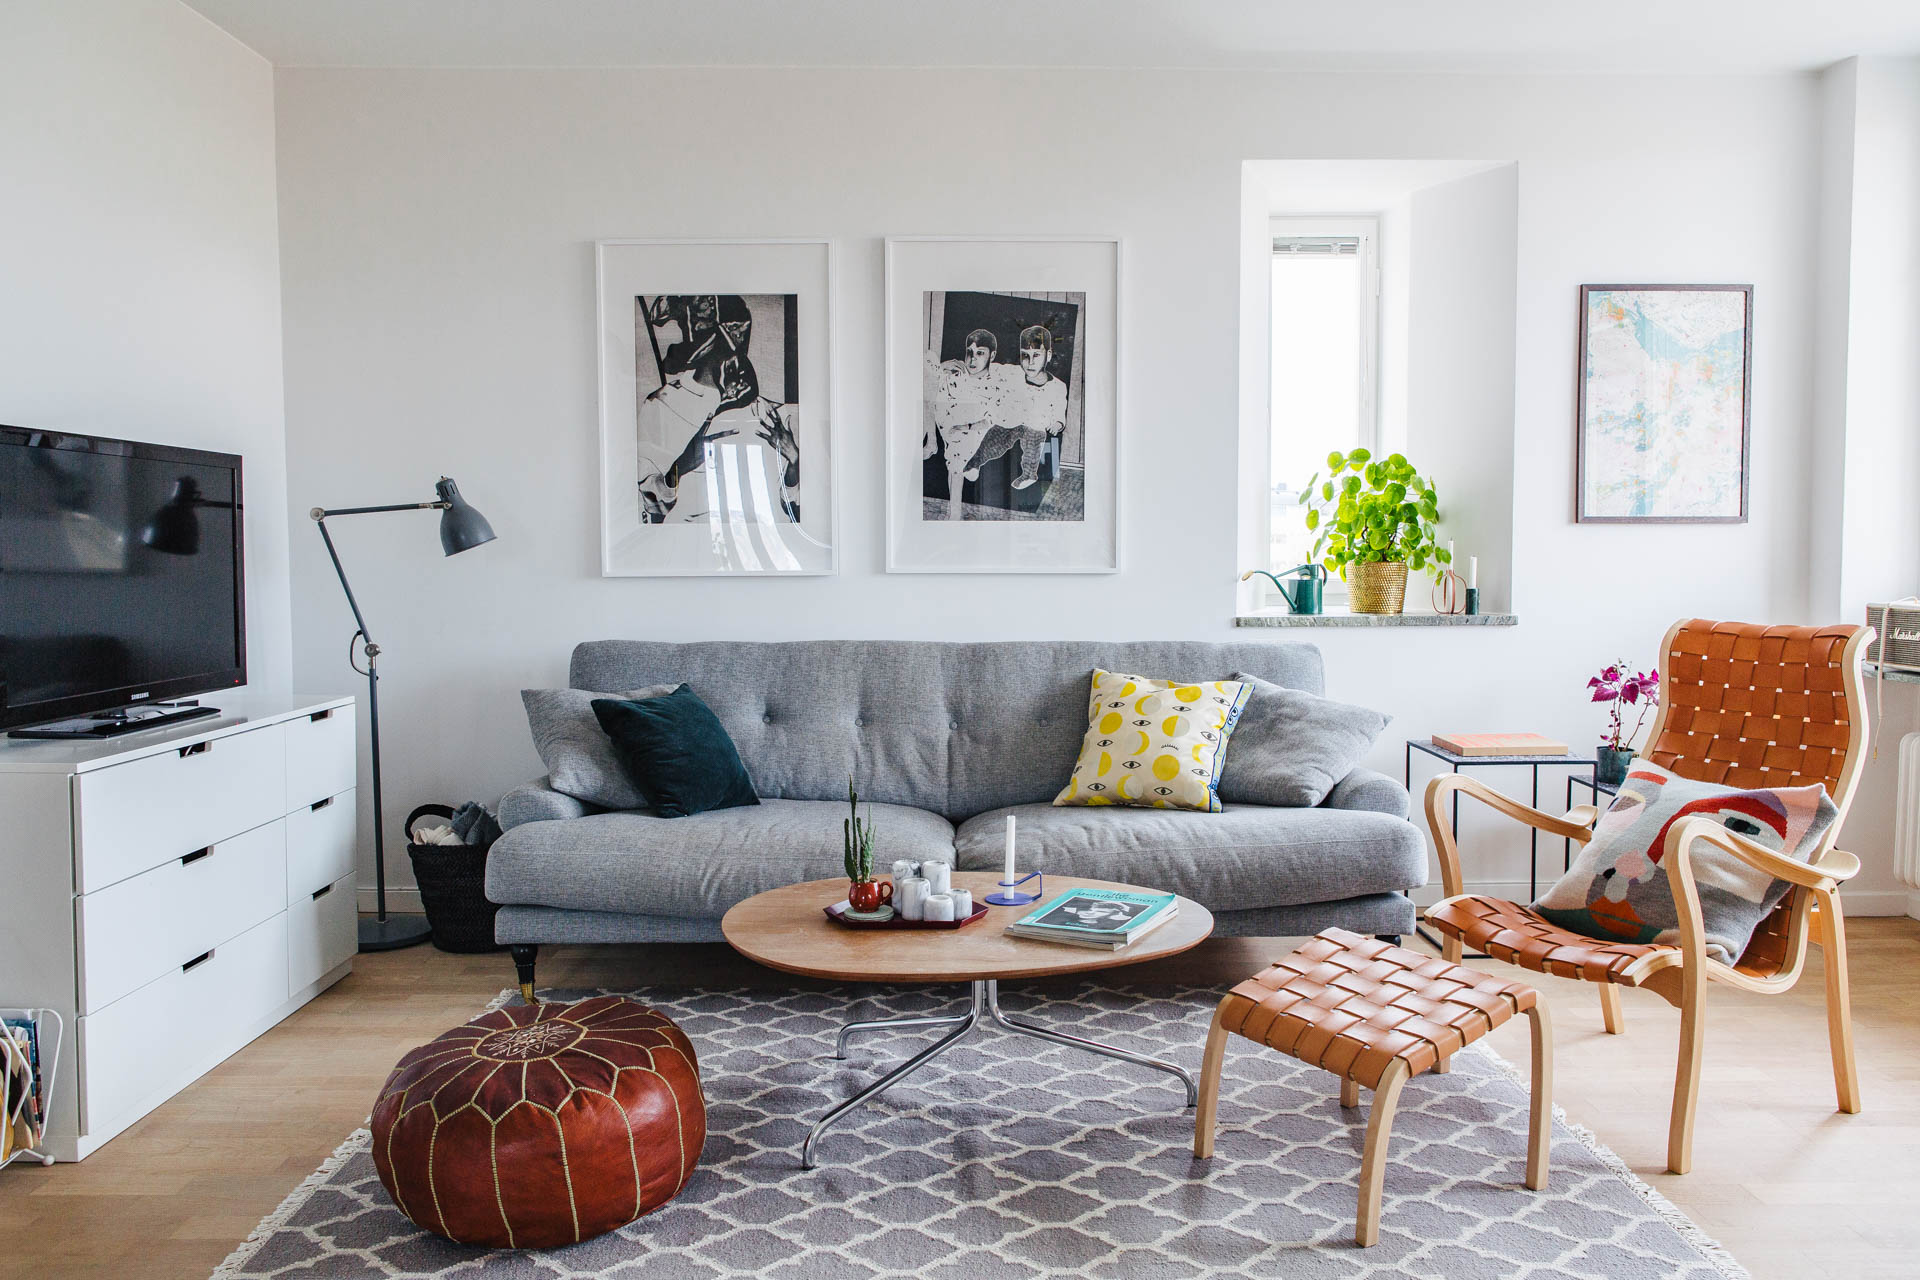 Home Tour suédois | elephant in the room